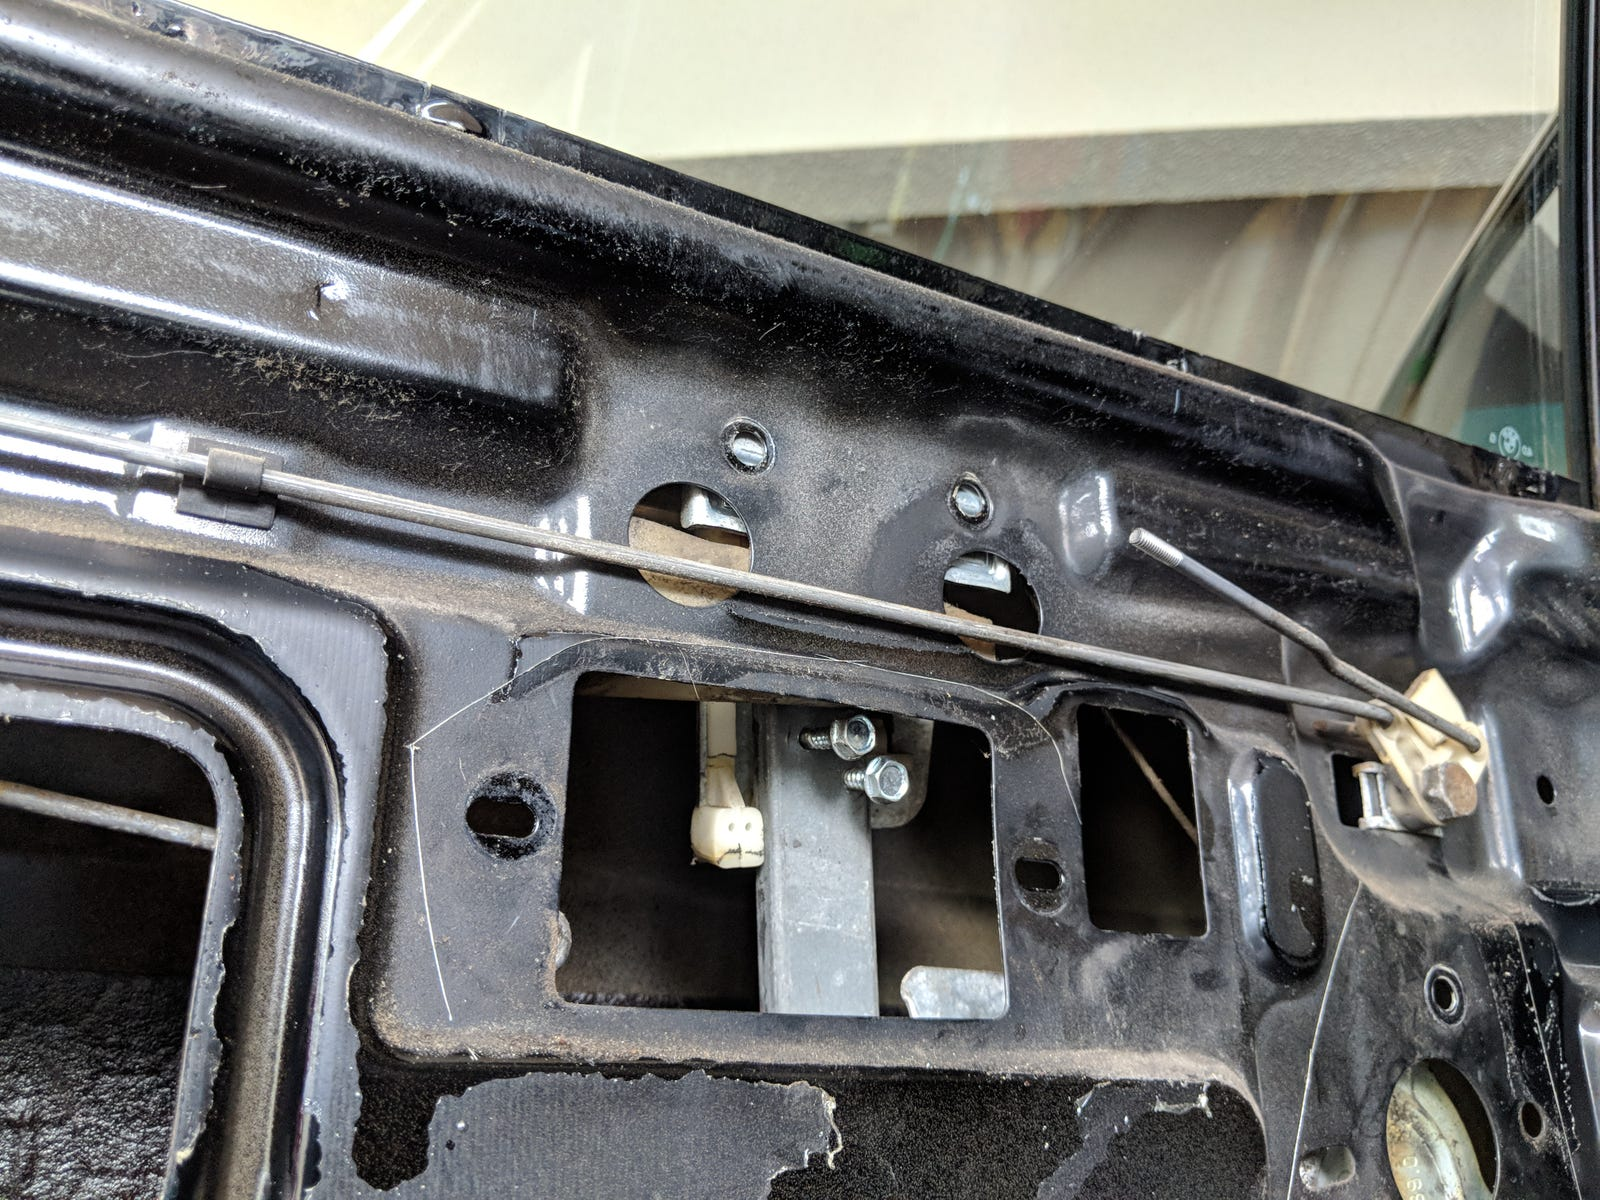 Those two screws had been driven into the old window regulator forcing the window in the up position. The previous owner's bodging continued.